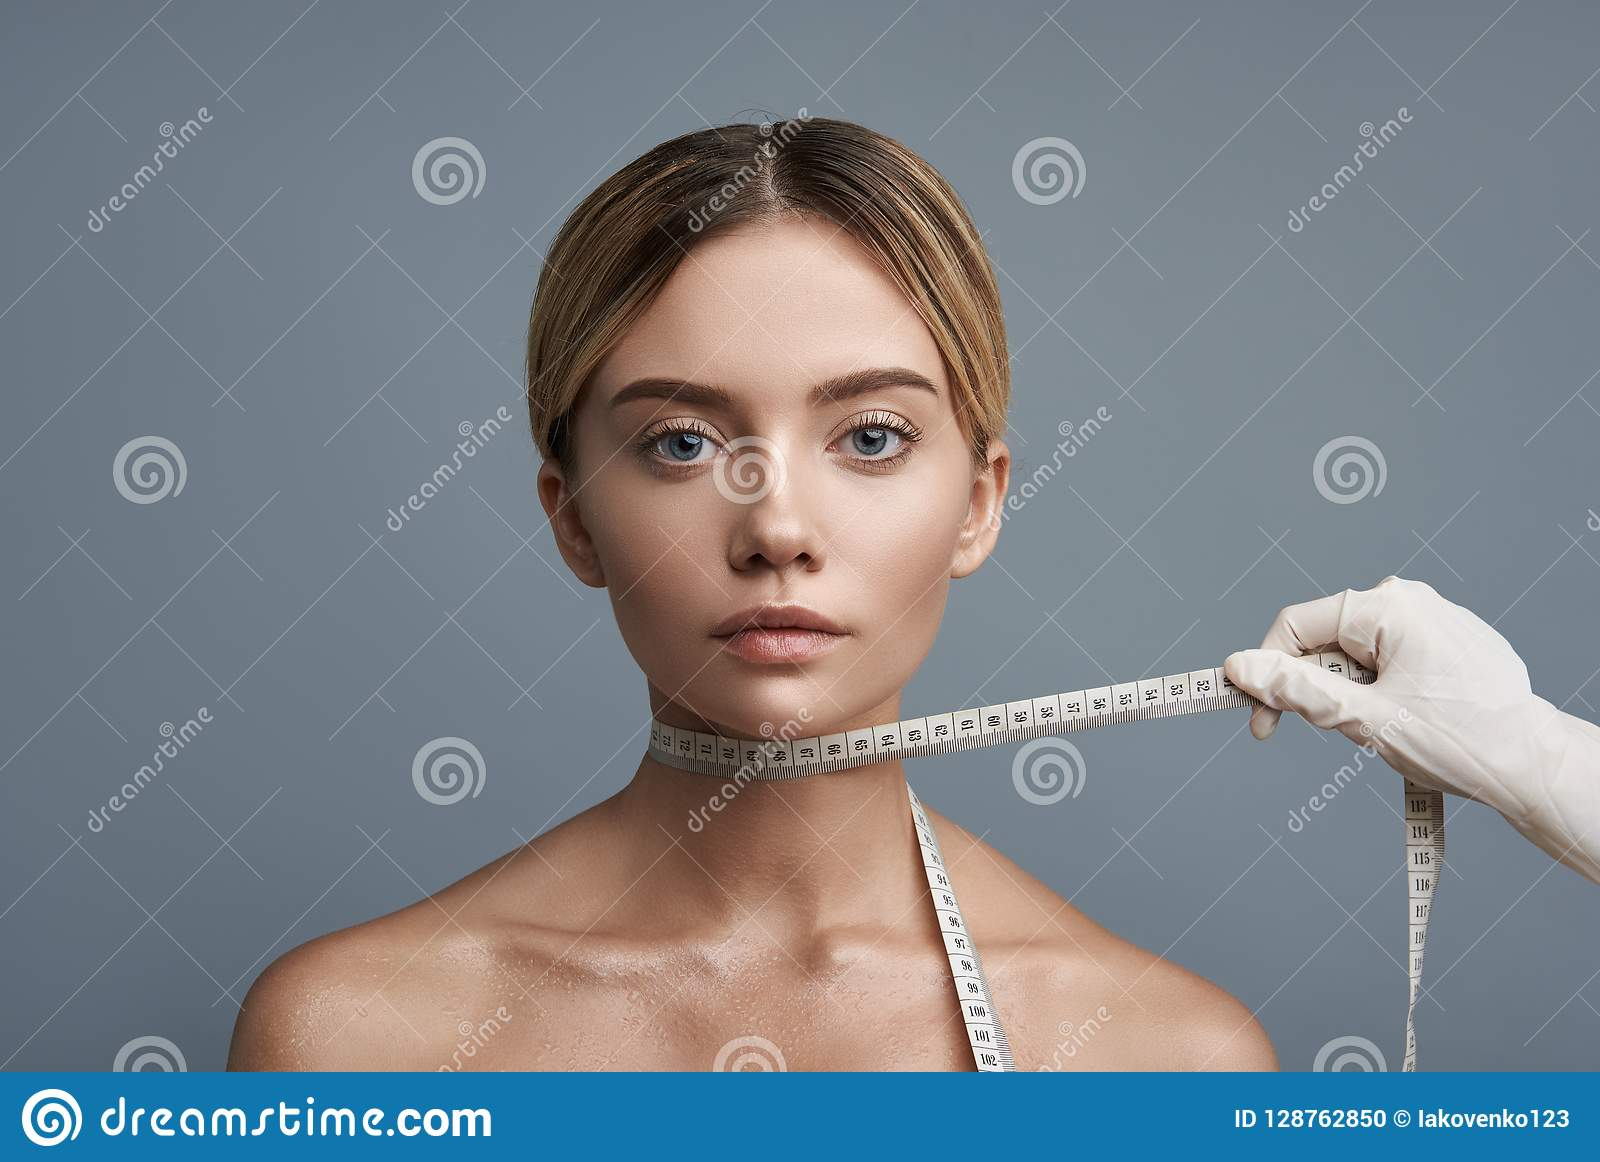 Young lady looking calm while having measuring tape on the neck